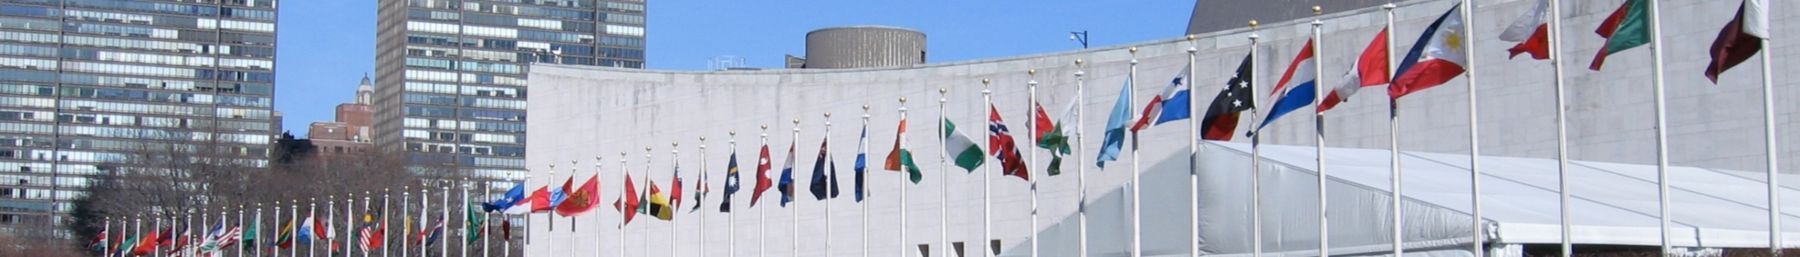 Flags outside the UN Headquarters in New York City.